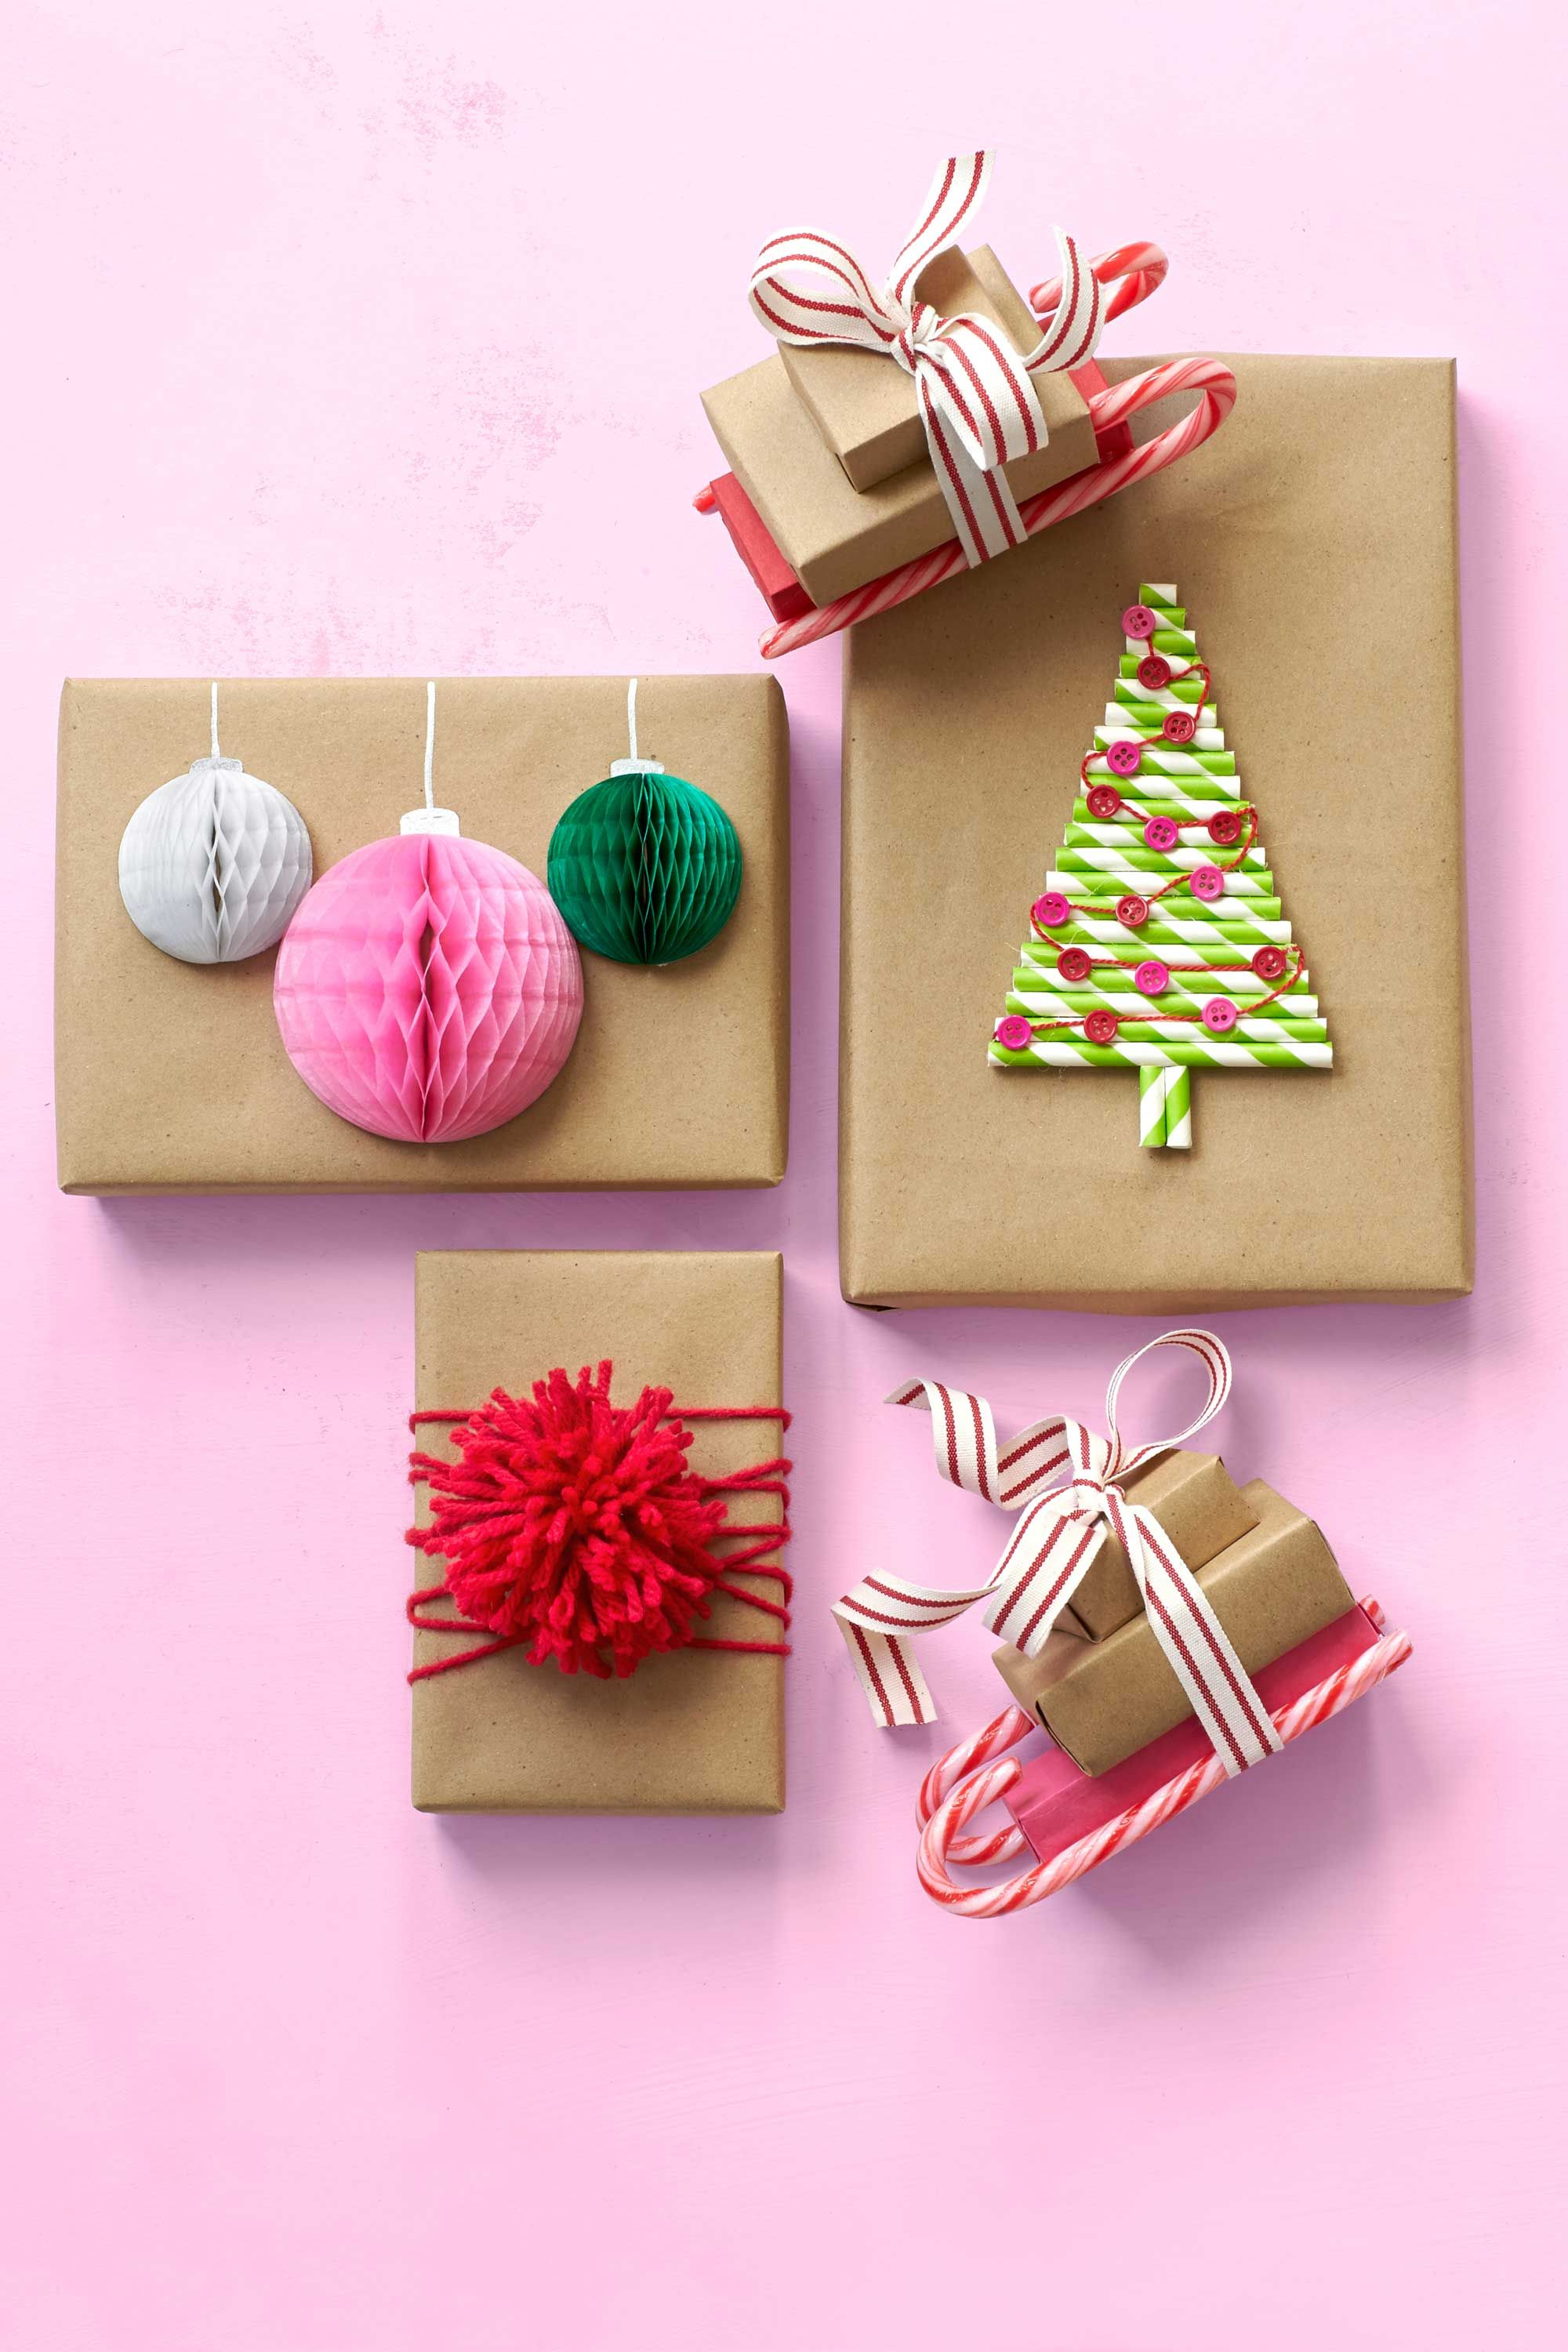 Charming Gift Wrap Ideas For Christmas Part - 2: Gift-wrapping Ideas Honeycomb Ornaments